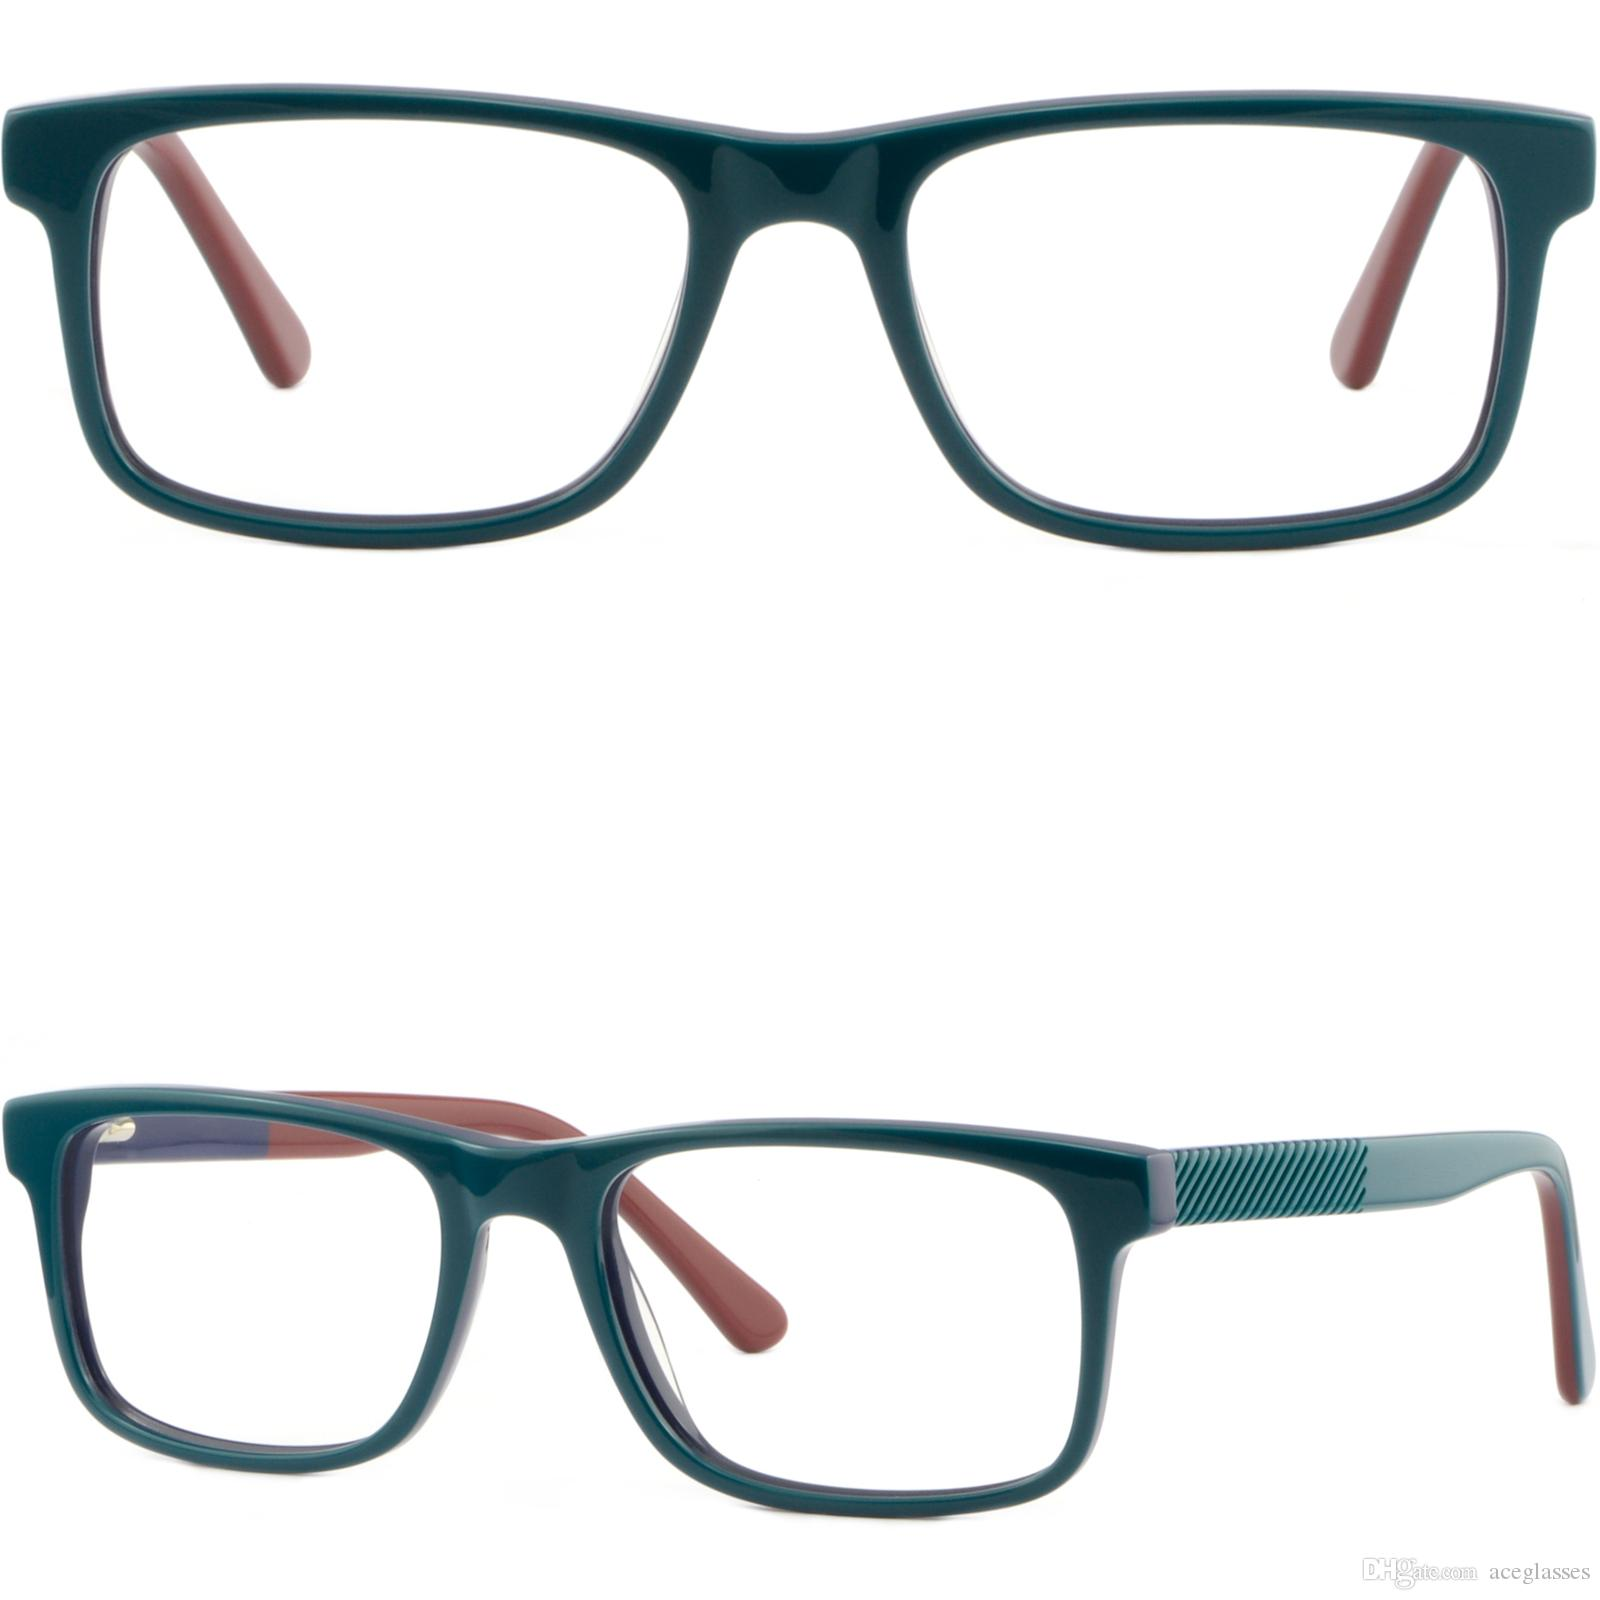 1d82e7a0eb5 Light Mens Women Acetate Plastic Frame Rectangle Prescription Glasses Dark  Green Glasses Frame Online with  31.08 Piece on Aceglasses s Store